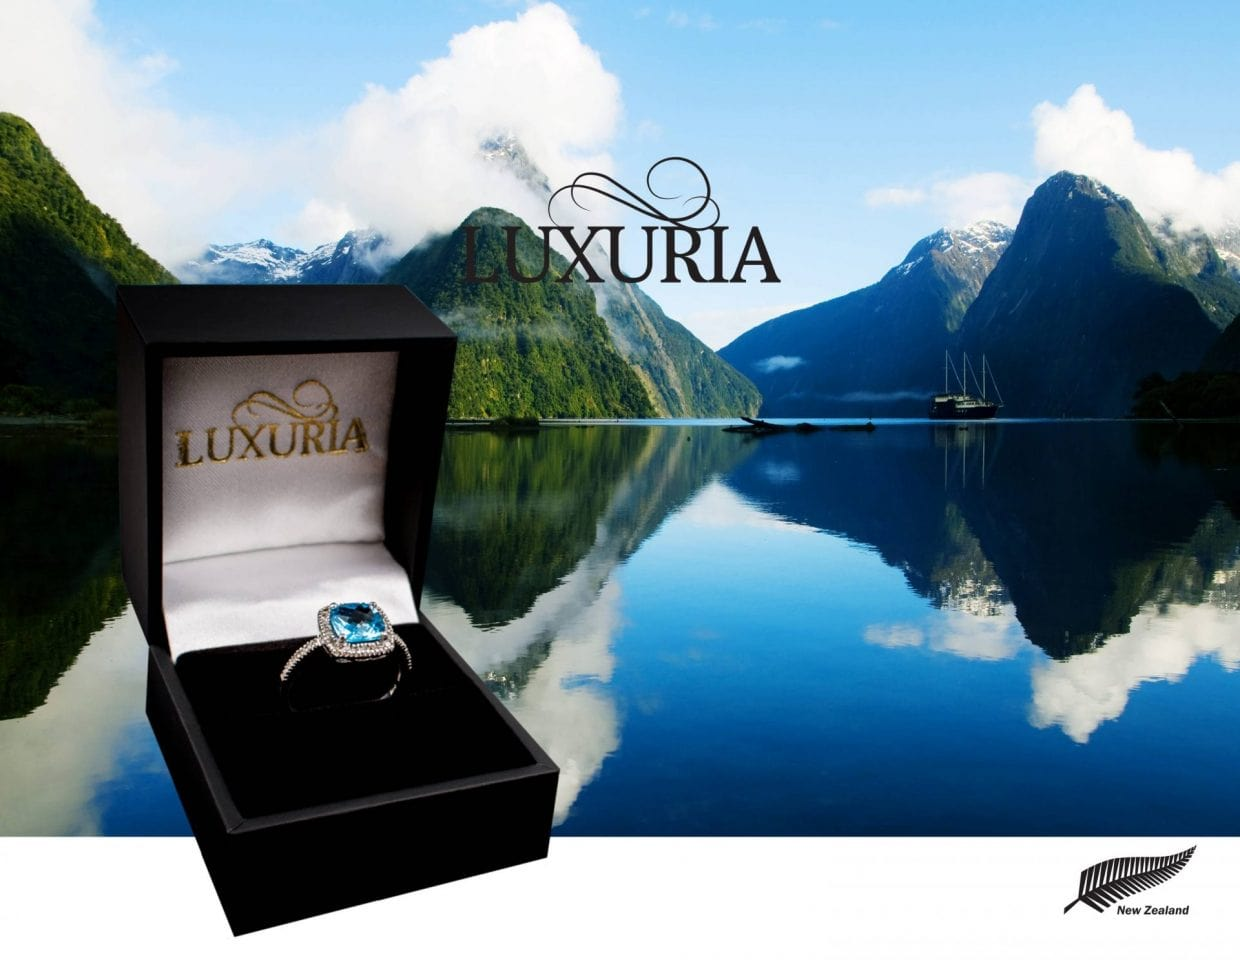 Luxuria is a jewellery brand from New Zealand